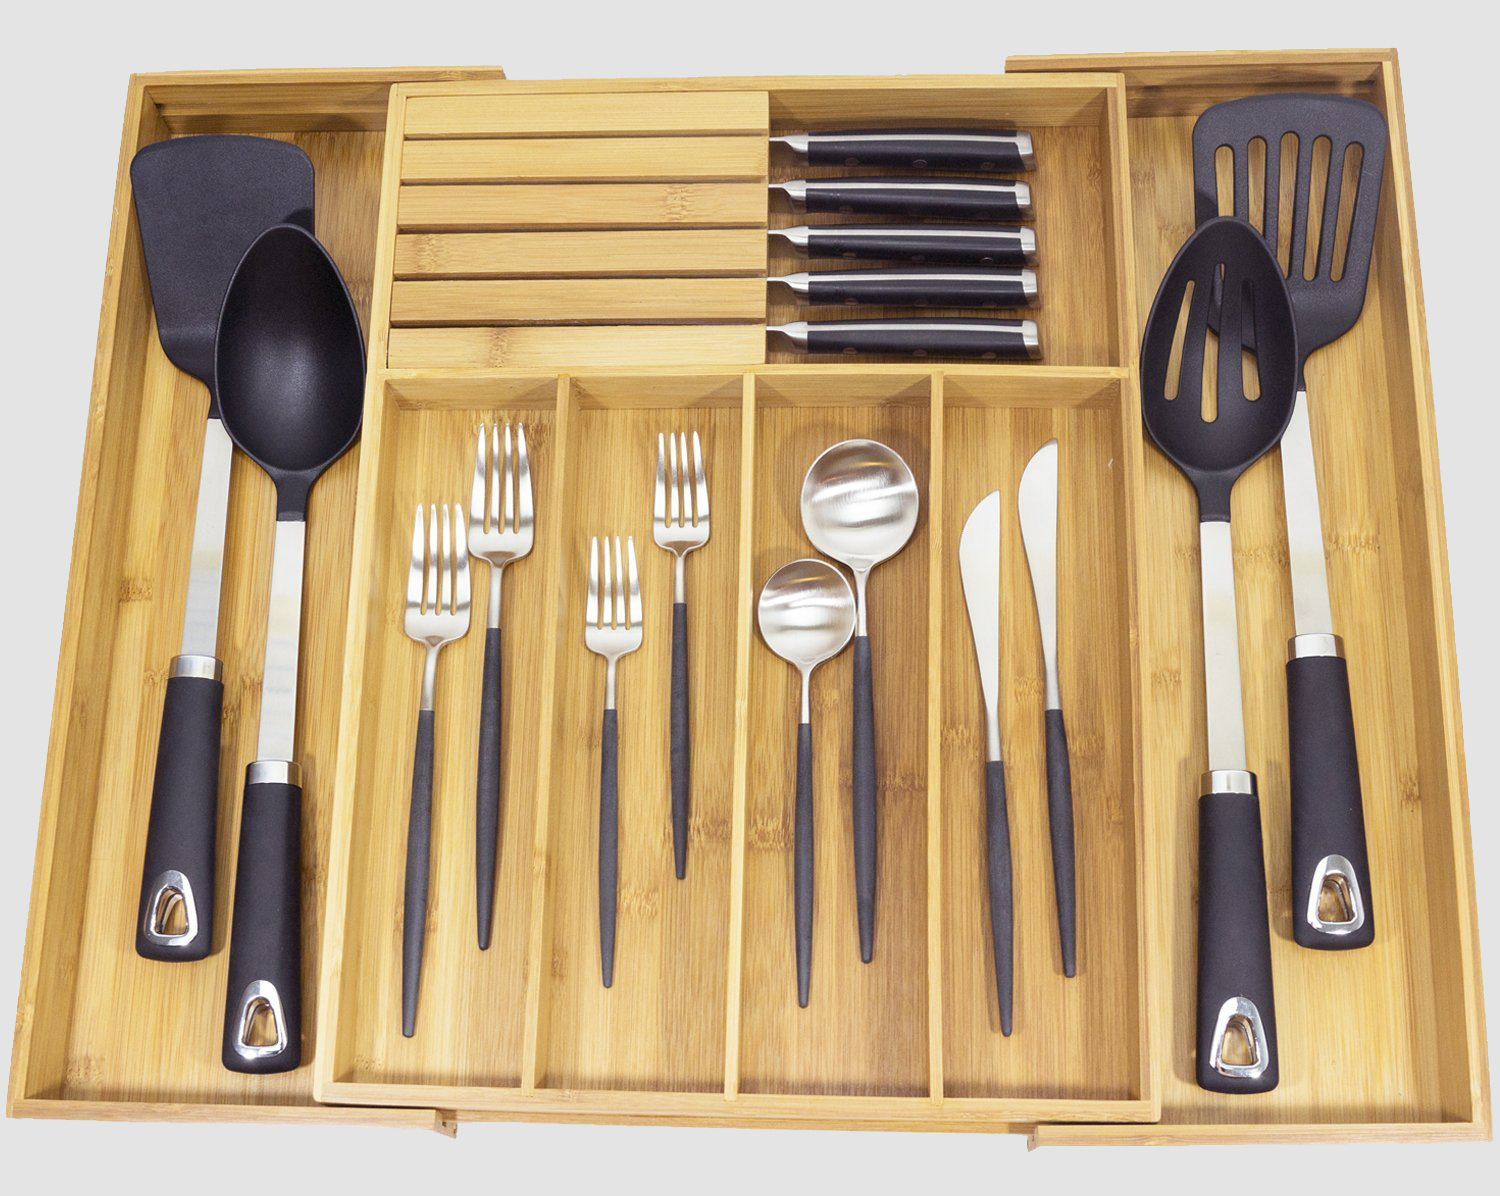 """Promising review: """"This is a really sturdy, nice organizer. I liked that I could take my knives out of my knife block on my counter and put them in it. I threw my knife block away and now have one less thing on my kitchen counter. This adjusts very easily and fits a lot of silverware. Good quality and a good buy."""" —LS Get it from Amazon for $28.99."""